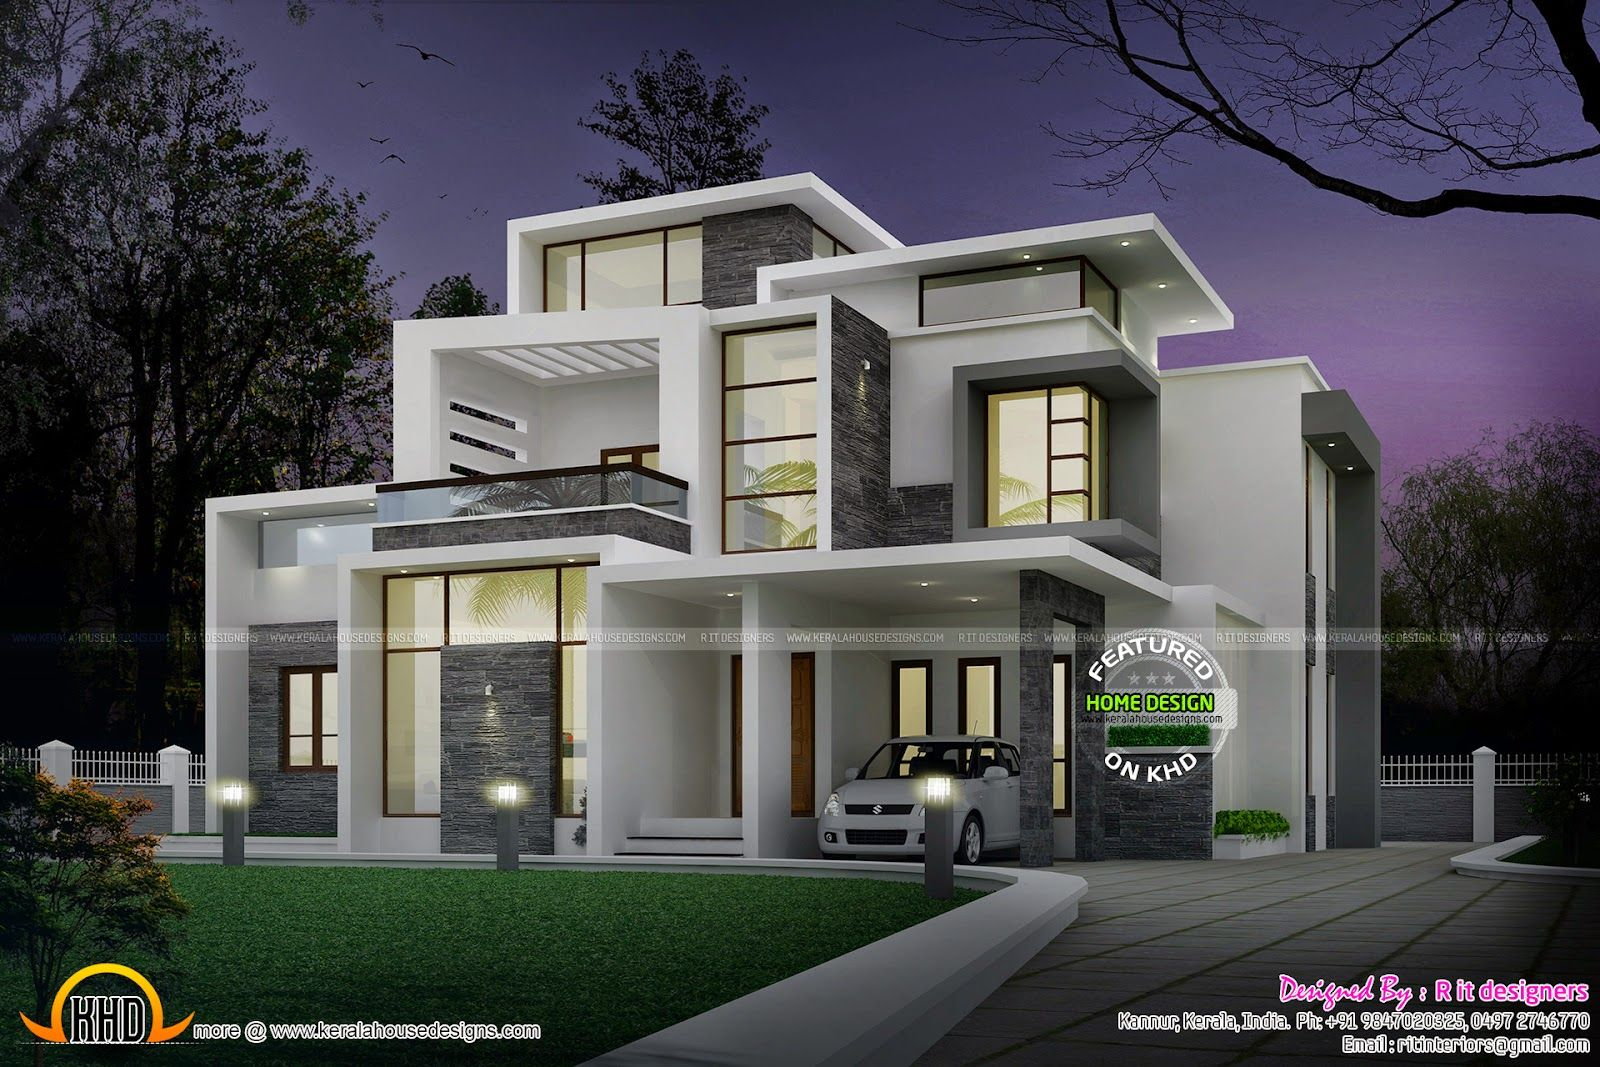 Grand contemporary home design kerala home design and Window styles for contemporary homes